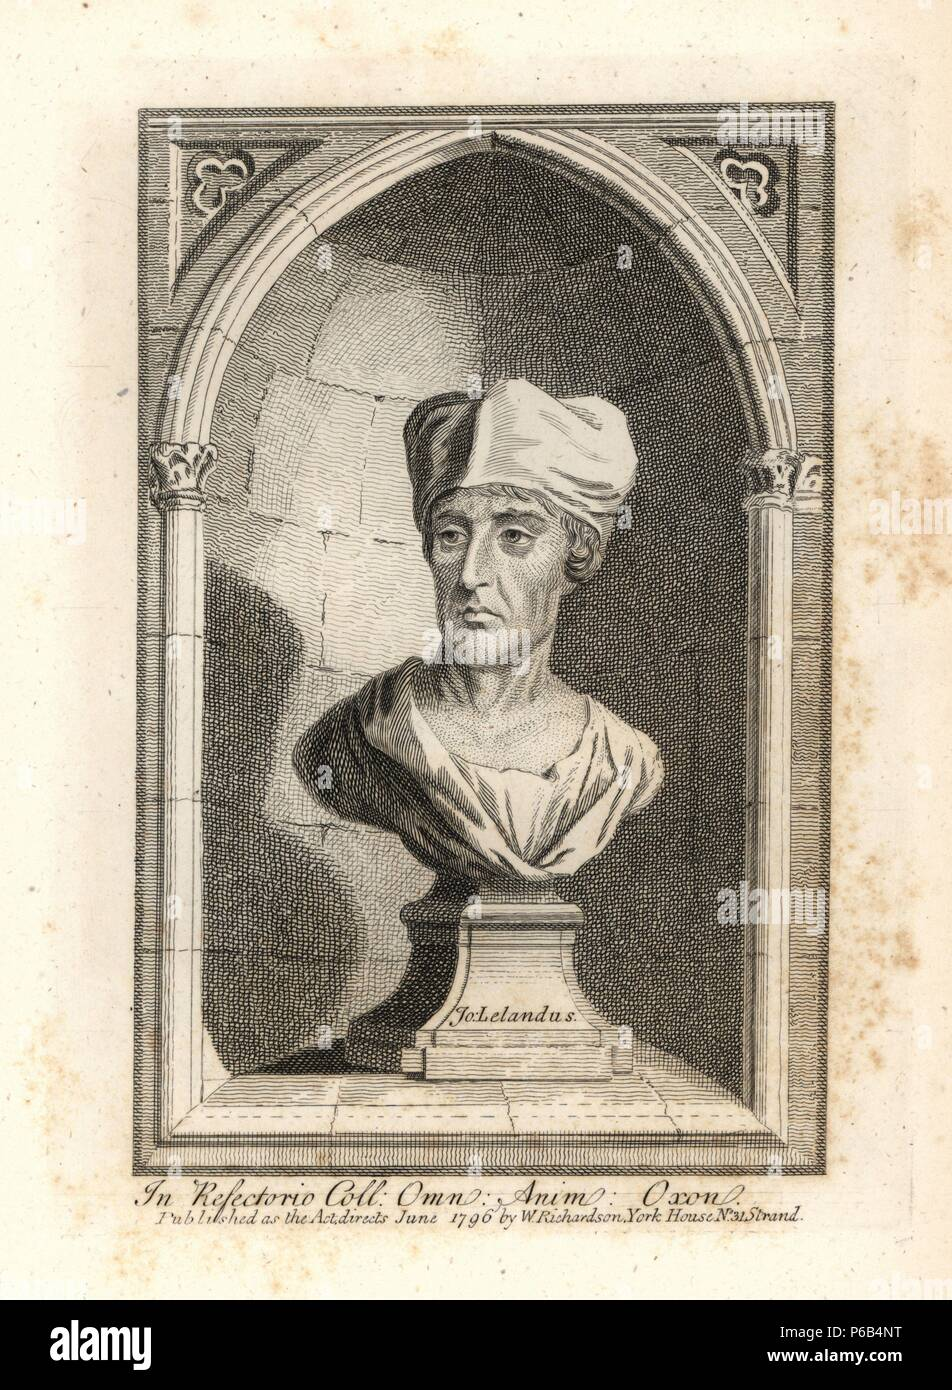 """John Leland, Canon of King's College, Oxford, antiquarian. Died 1652. Copperplate engraving from Richardson's """"Portraits illustrating Granger's Biographical History of England,"""" London, 1792–1812. Published by William Richardson, printseller, London. James Granger (1723–1776) was an English clergyman, biographer, and print collector. Stock Photo"""